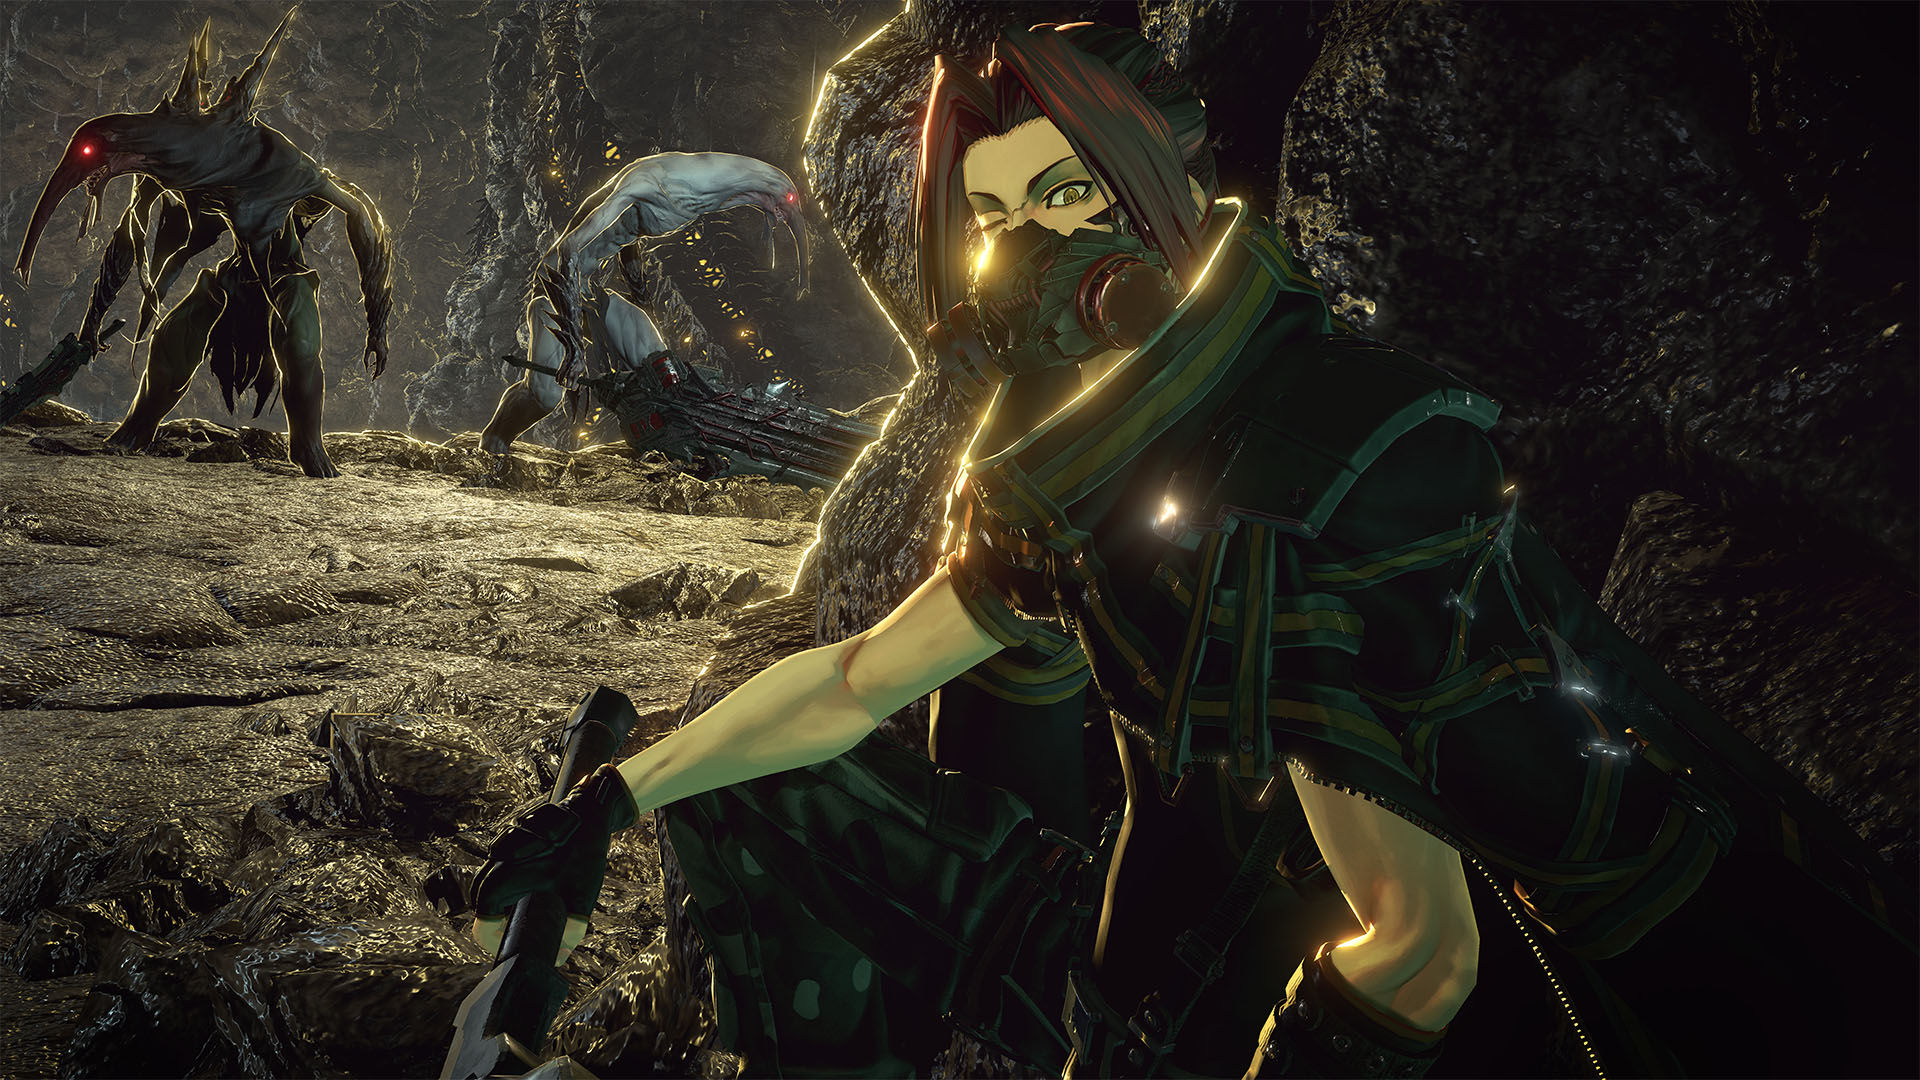 First Details Images Western Release Confirmed for Code Vein